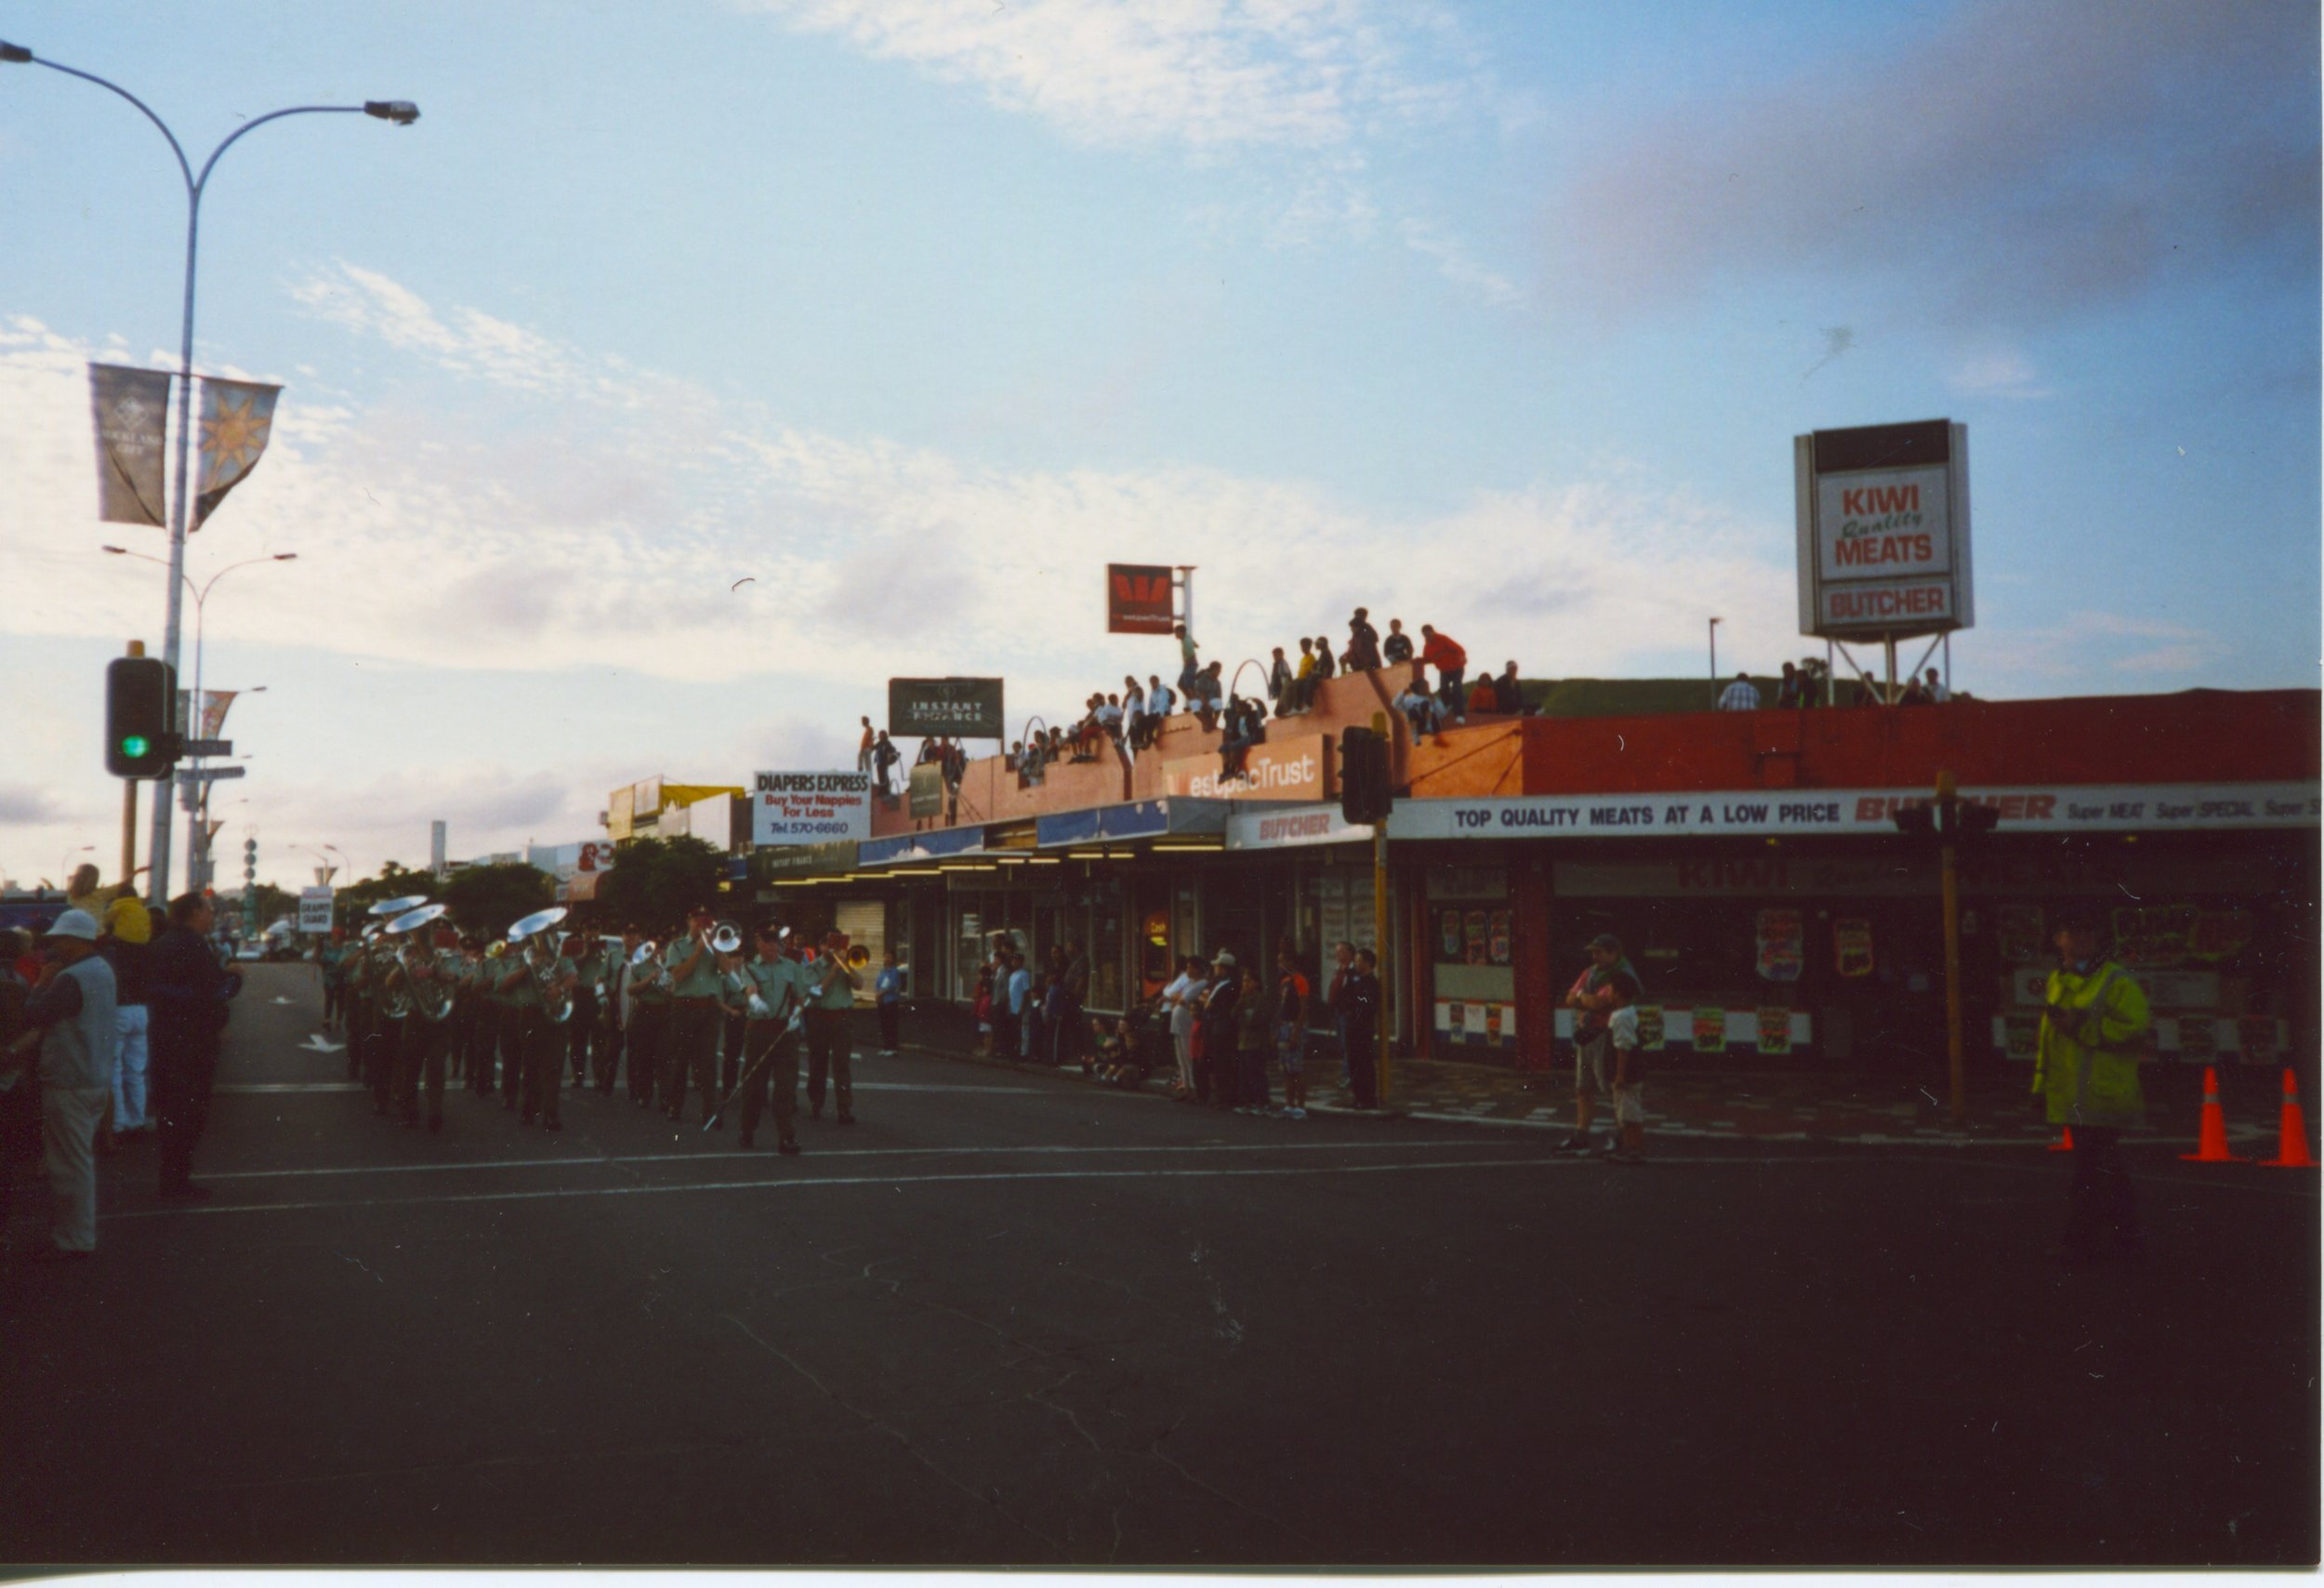 Crowds sit on the shop roofs to watch the Santa Parade. Date unknown. Image courtesy of the Panmure Historical Society.